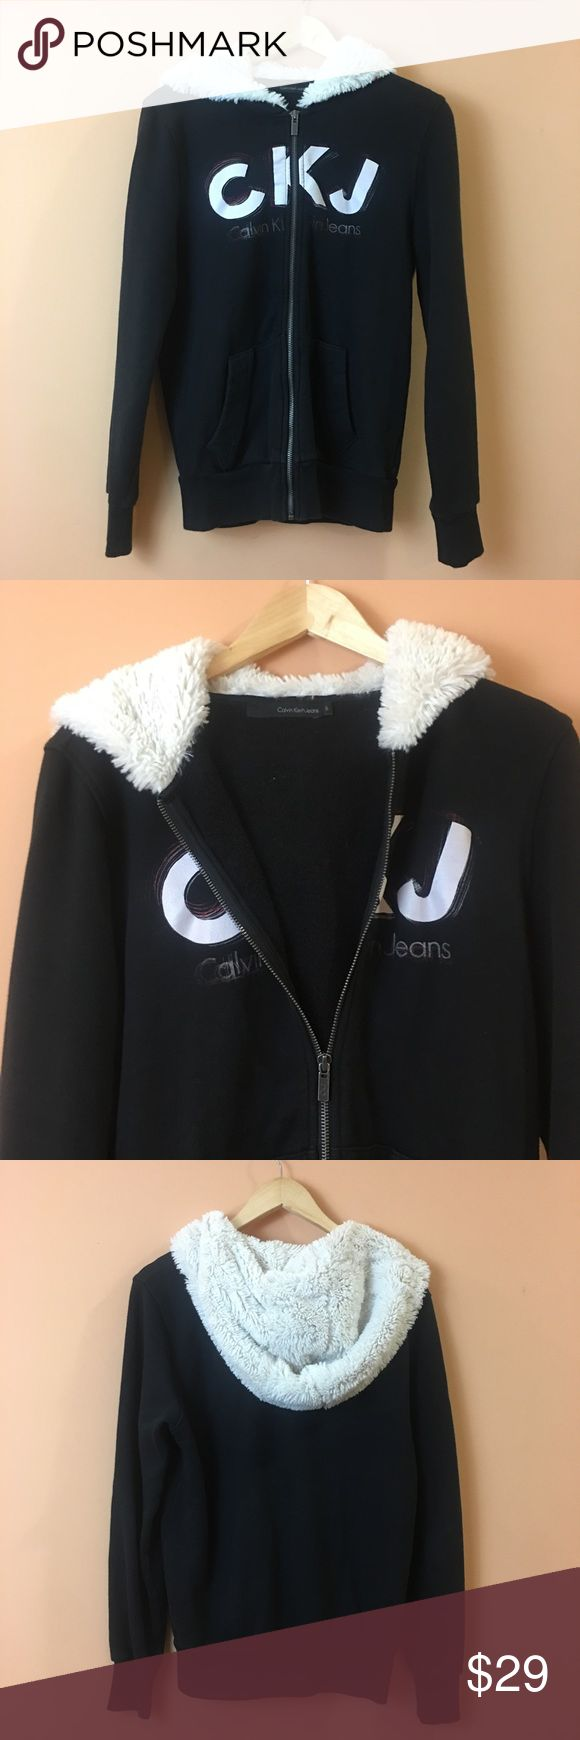 """Men's Calvin Klein Jeans Zip Up Hoodie Sweater Men's Calvin Klein Jeans Zip Up Hoodie Sweater. Fleece Lined. Pit to pit 20""""/ length 26"""" Calvin Klein Jeans Sweaters Zip Up"""